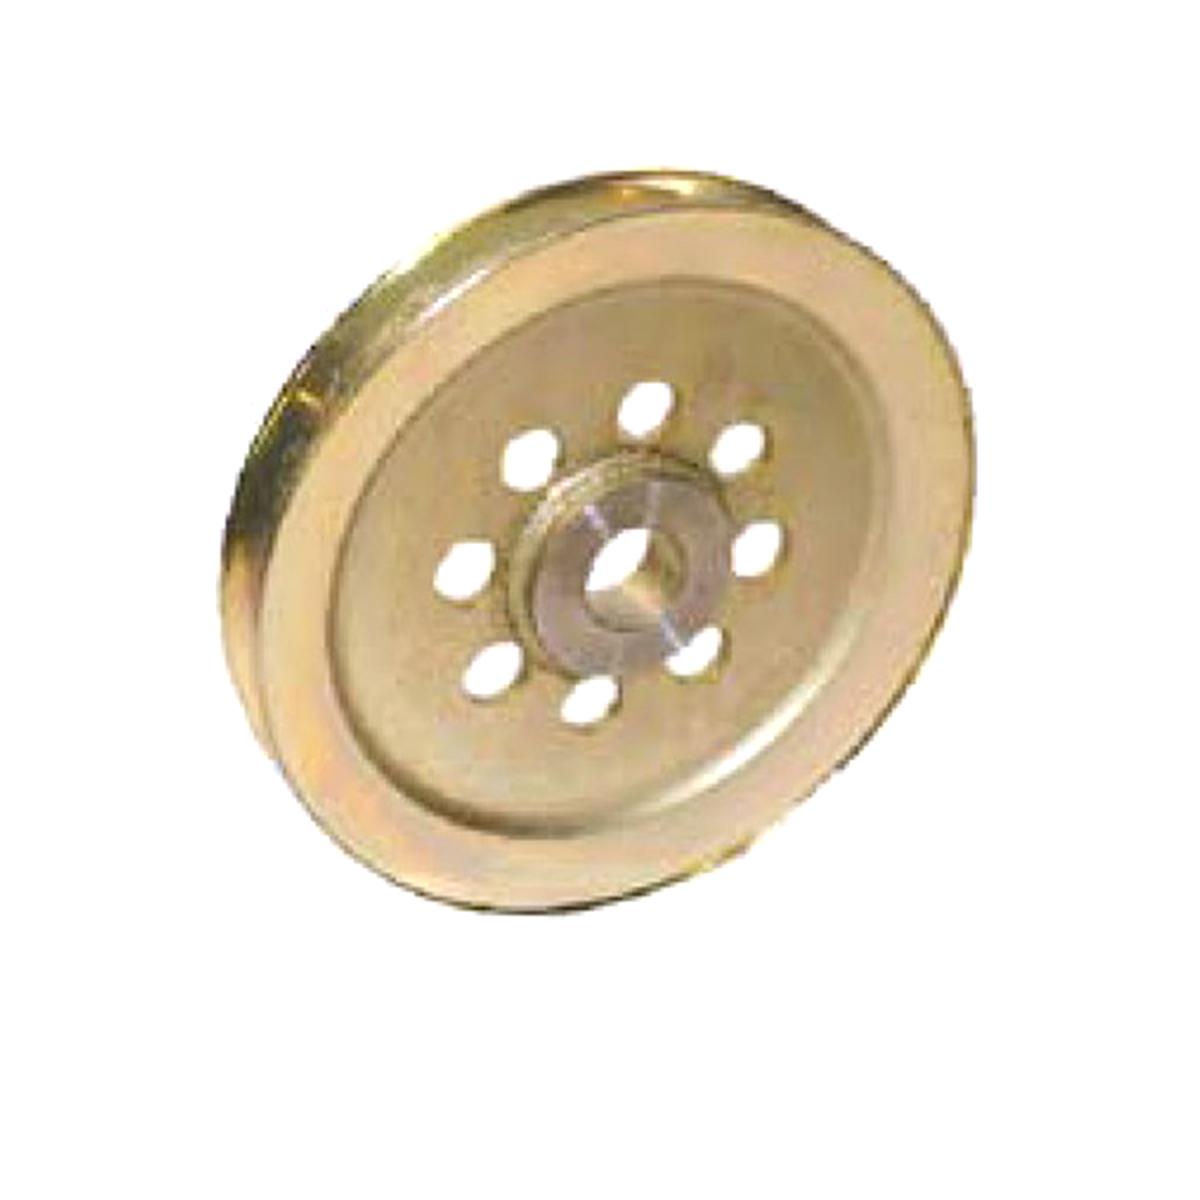 300454 Dixie Chopper Split Pulley 6.75